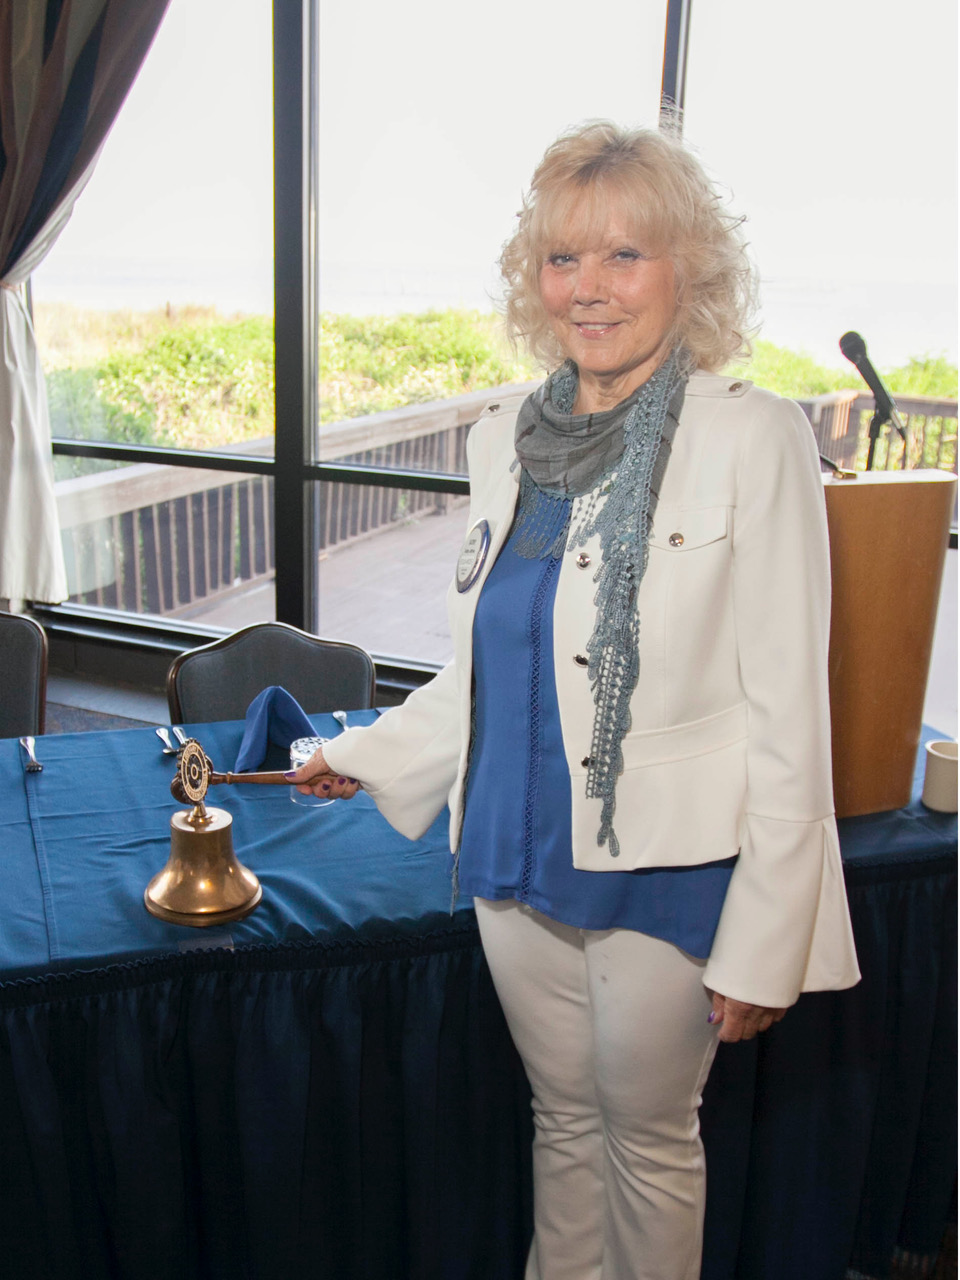 Kathy rings the bell-5677.jpeg